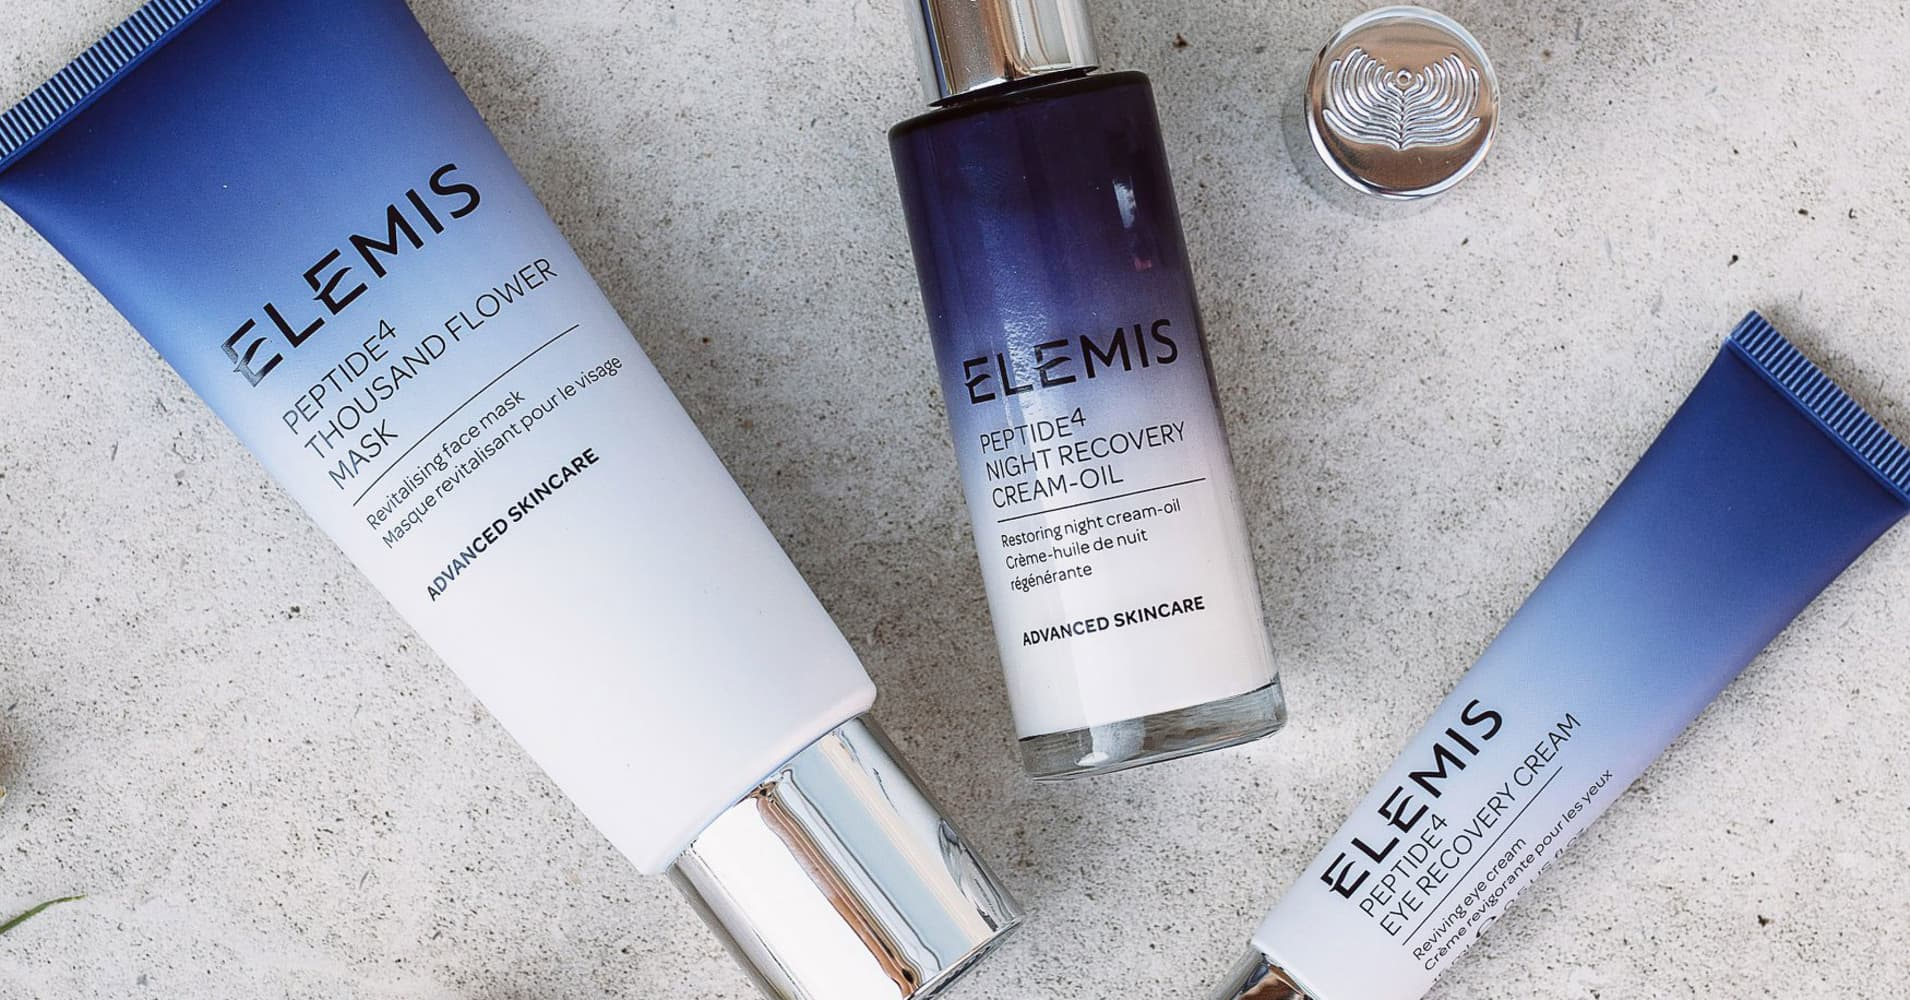 British cult favorite Elemis is the latest skin-care brand to hit the block, taps Jefferies